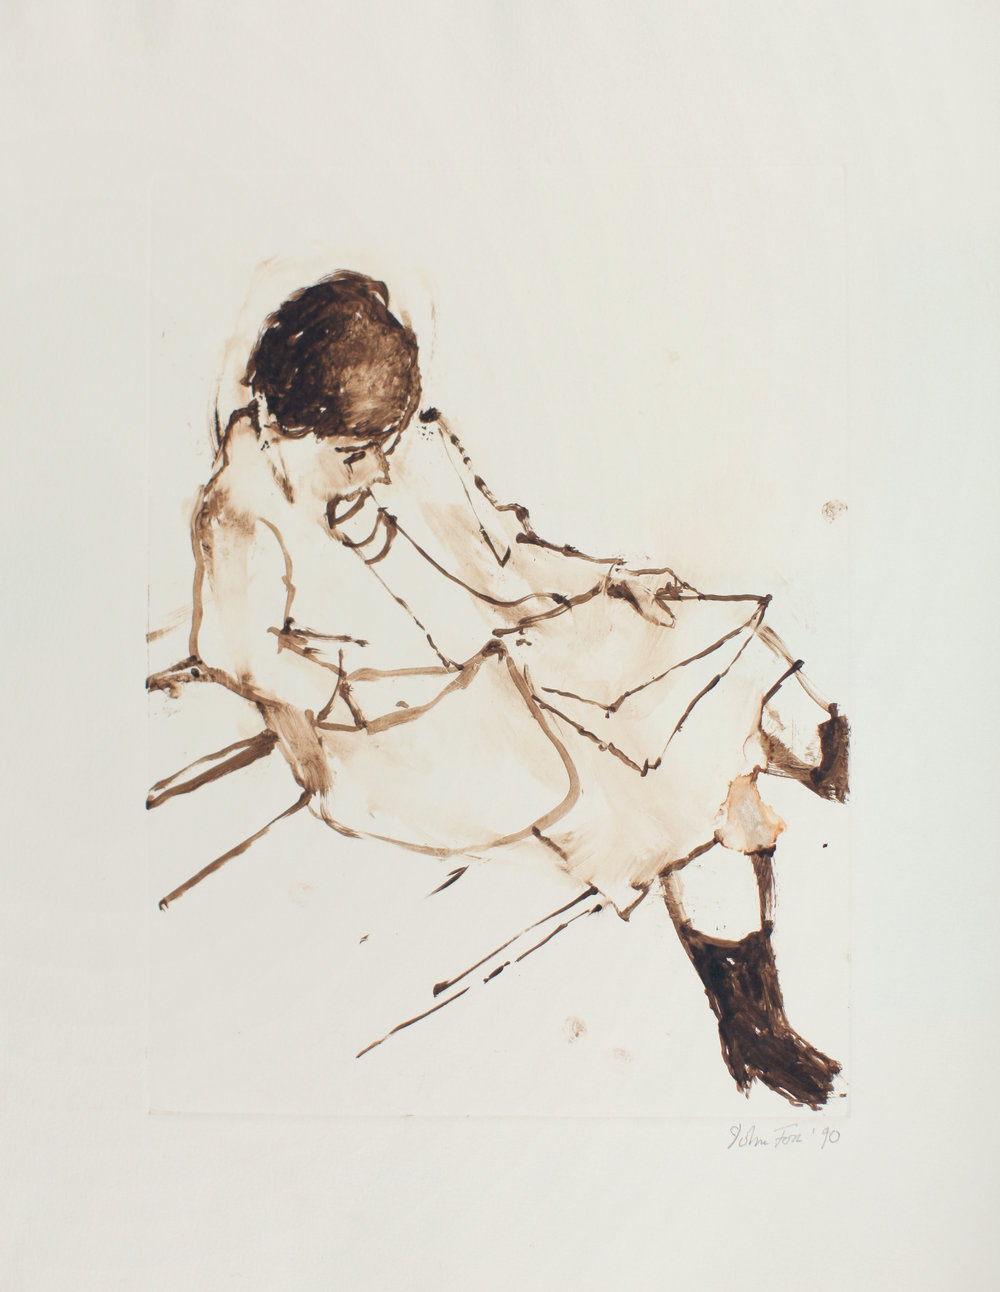 1990_Sandra_Looking_in_Handbag_monotype_on_paper_117x15in_image_12x9in_WPF141.jpg